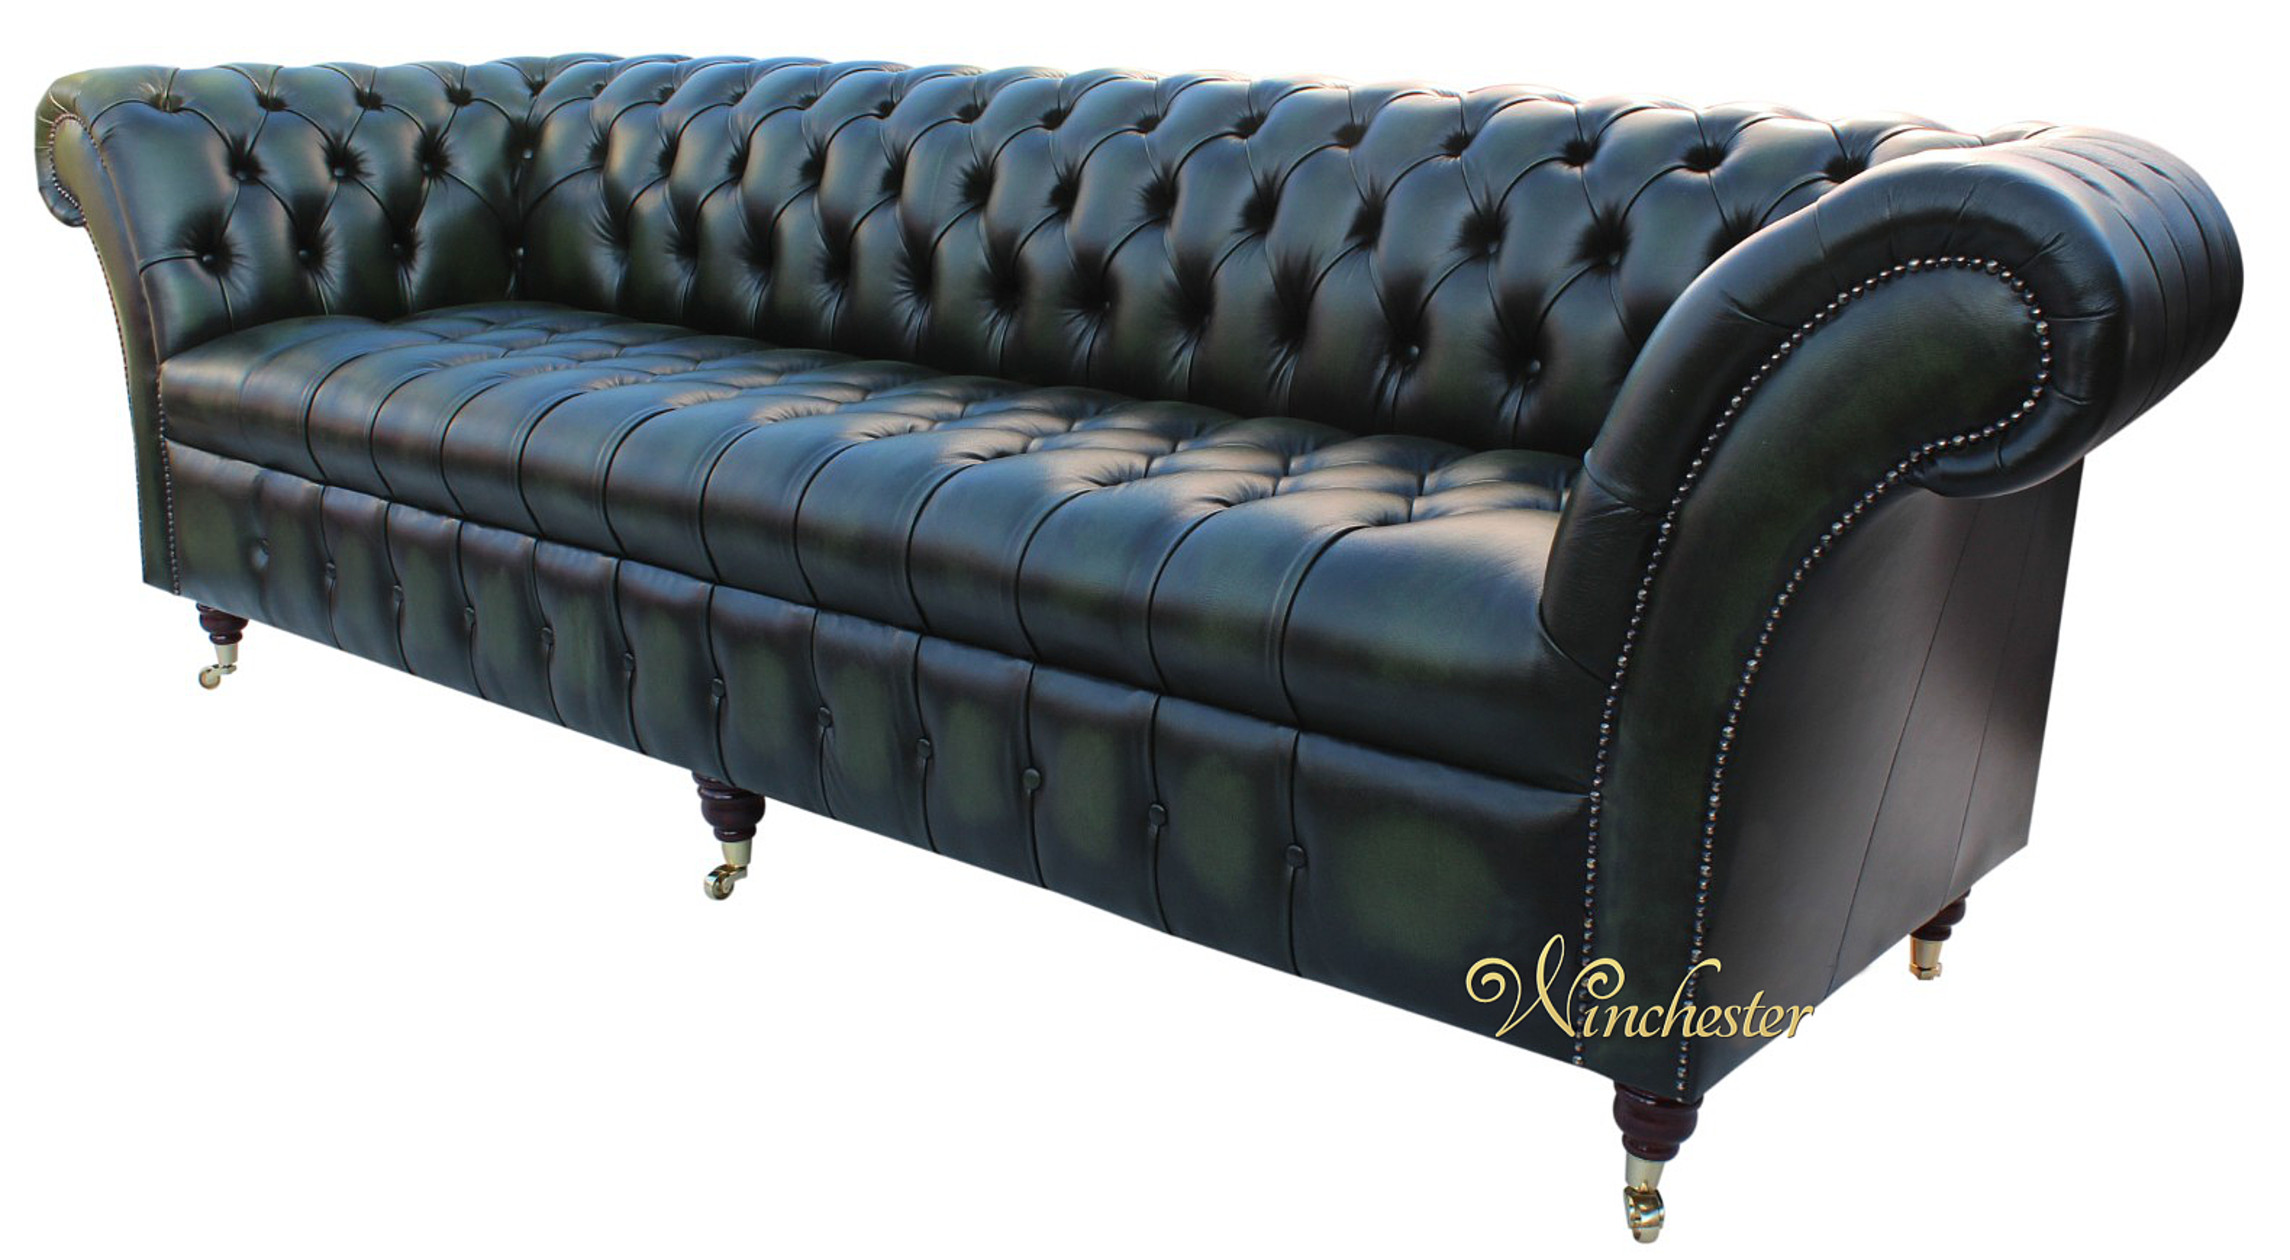 Chesterfield Balmoral 4 Seater Sofa Buttoned Seat Settee